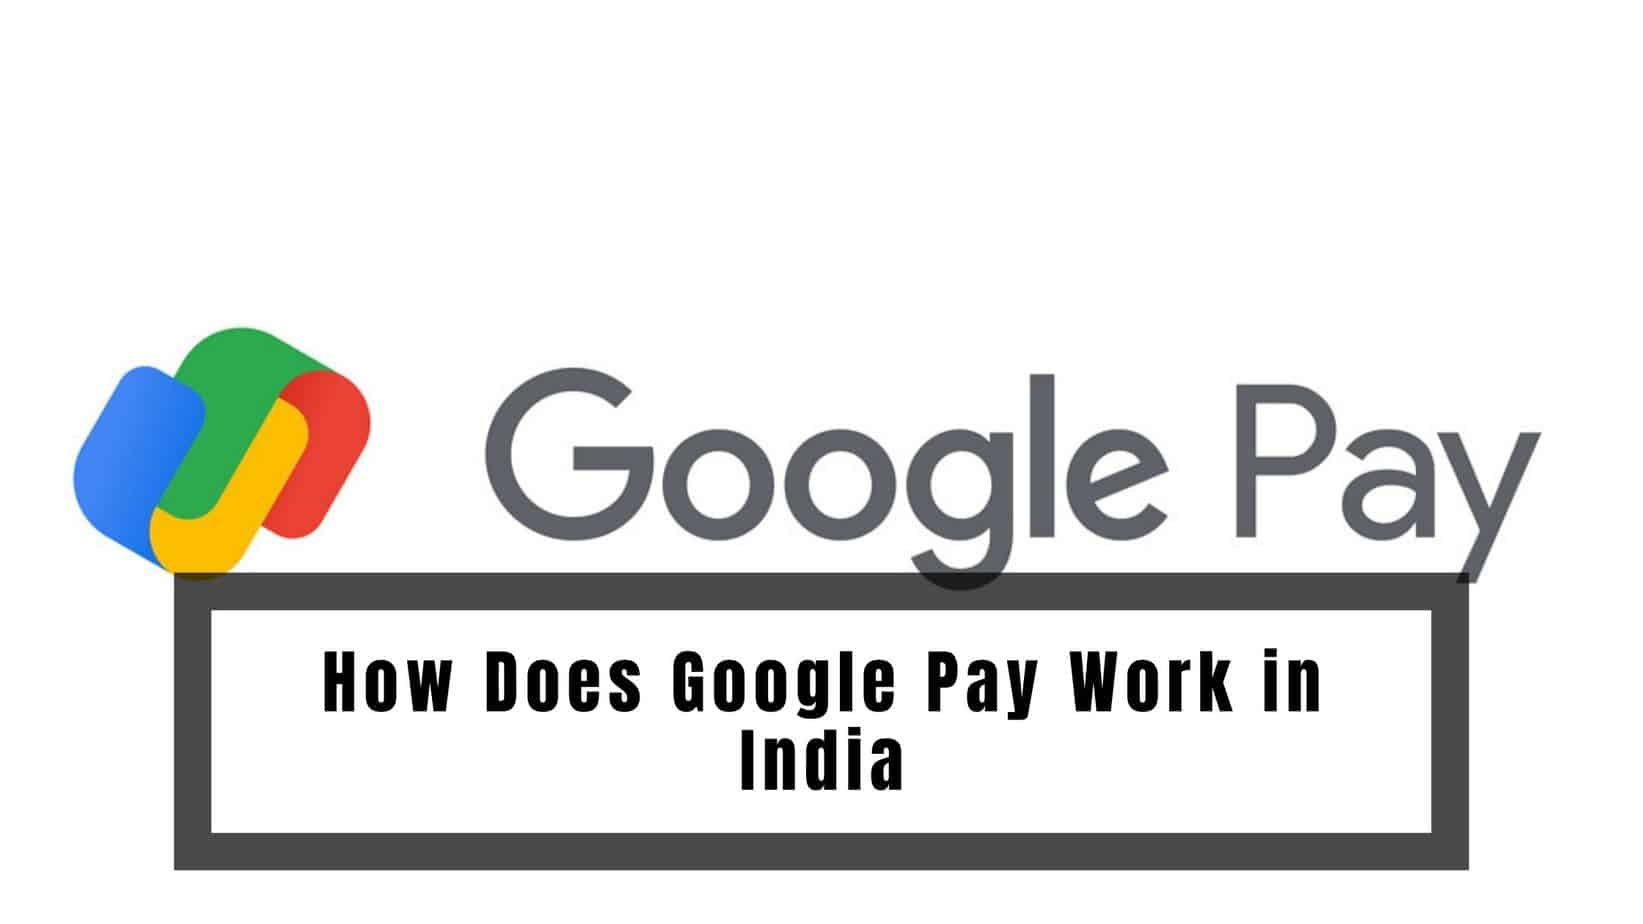 How Does Google Pay Work in India